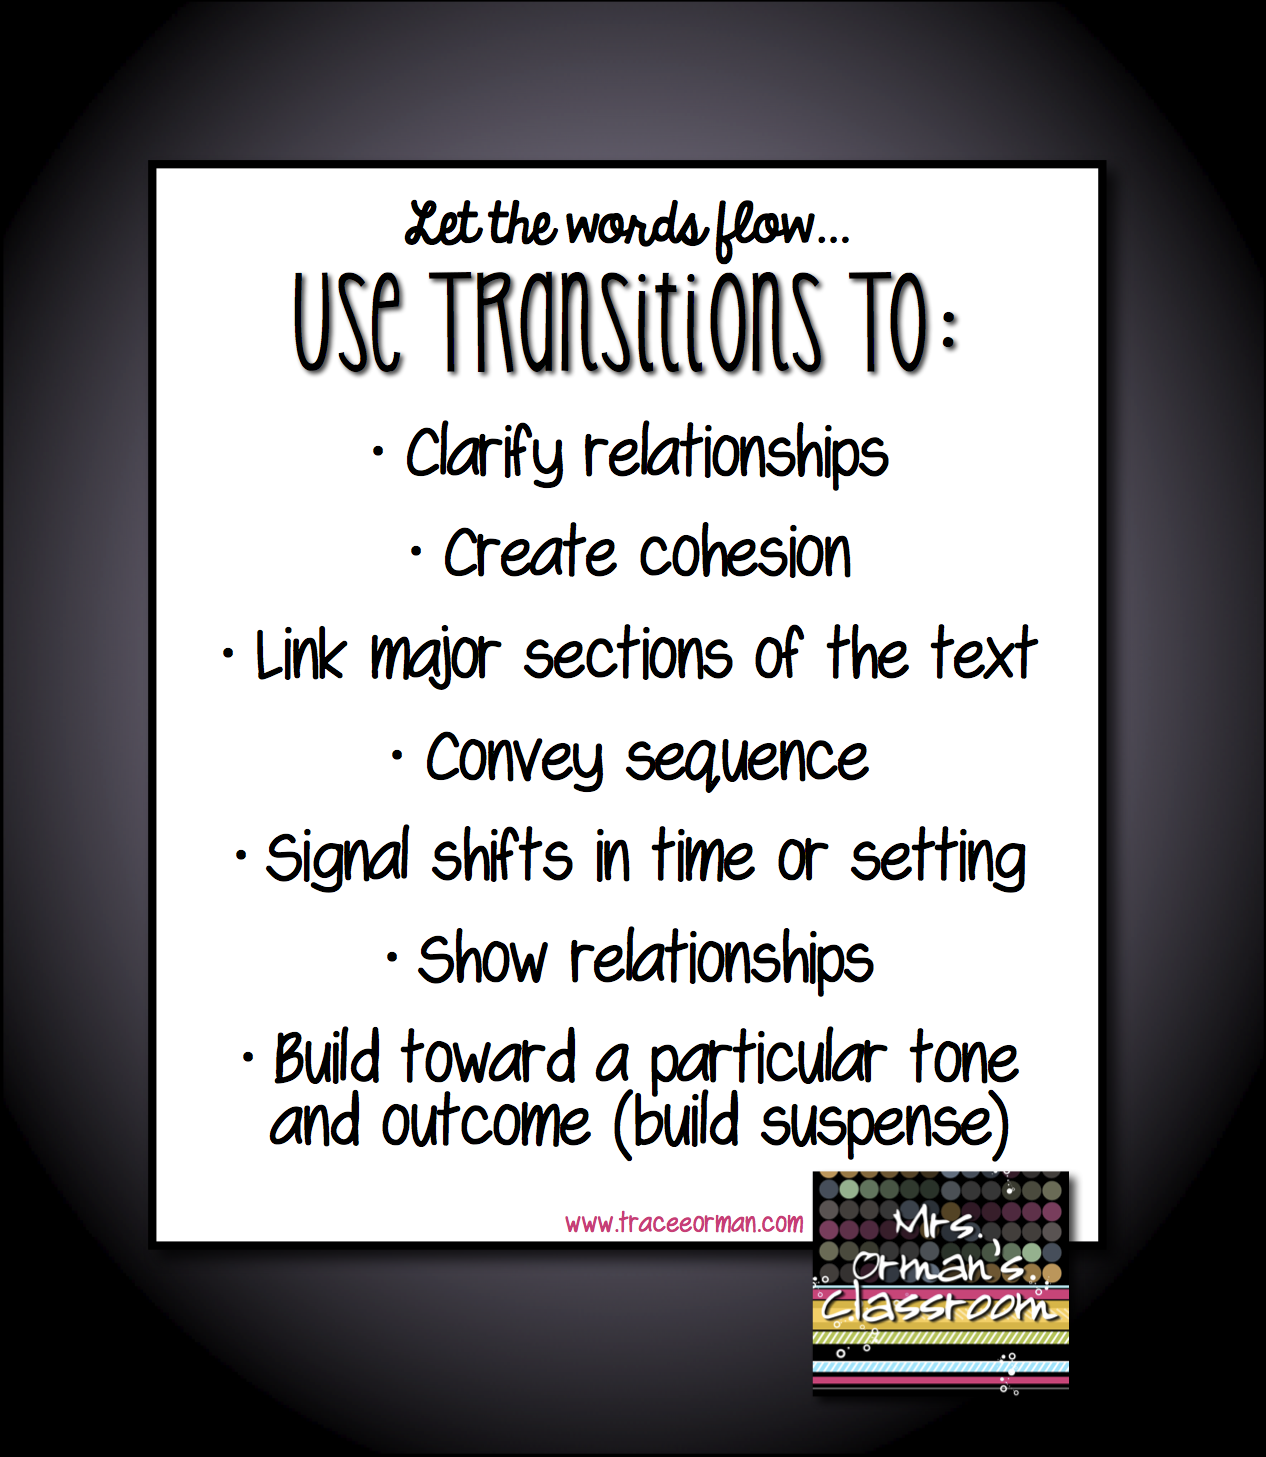 mrs orman s classroom common core tips using transitional words common core tips using transitional words in writing